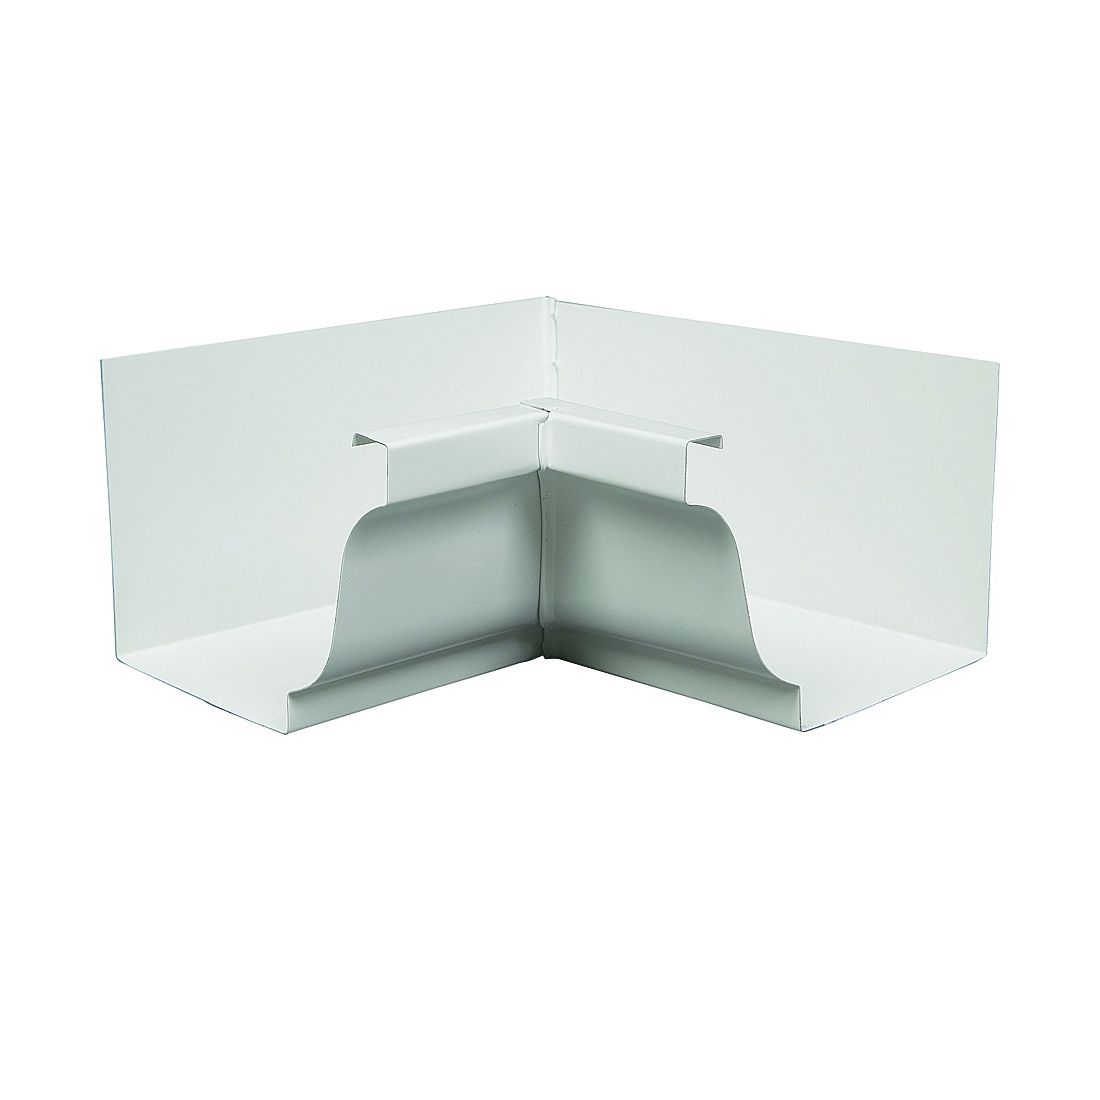 Picture of Amerimax 27201 Gutter Miter, Aluminum, White